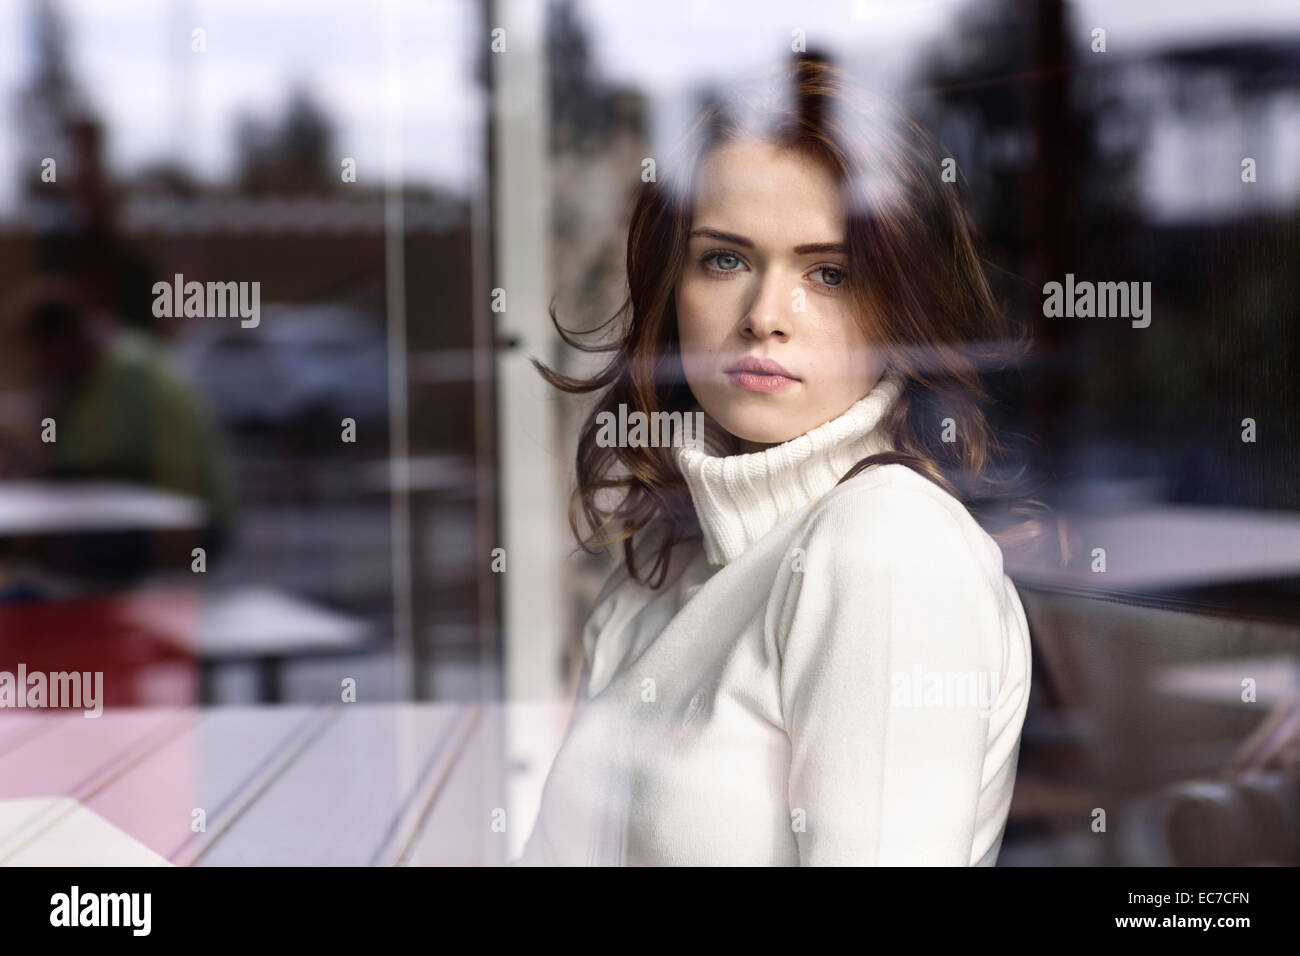 Portrait of young woman looking through window pane of a cafe - Stock Image